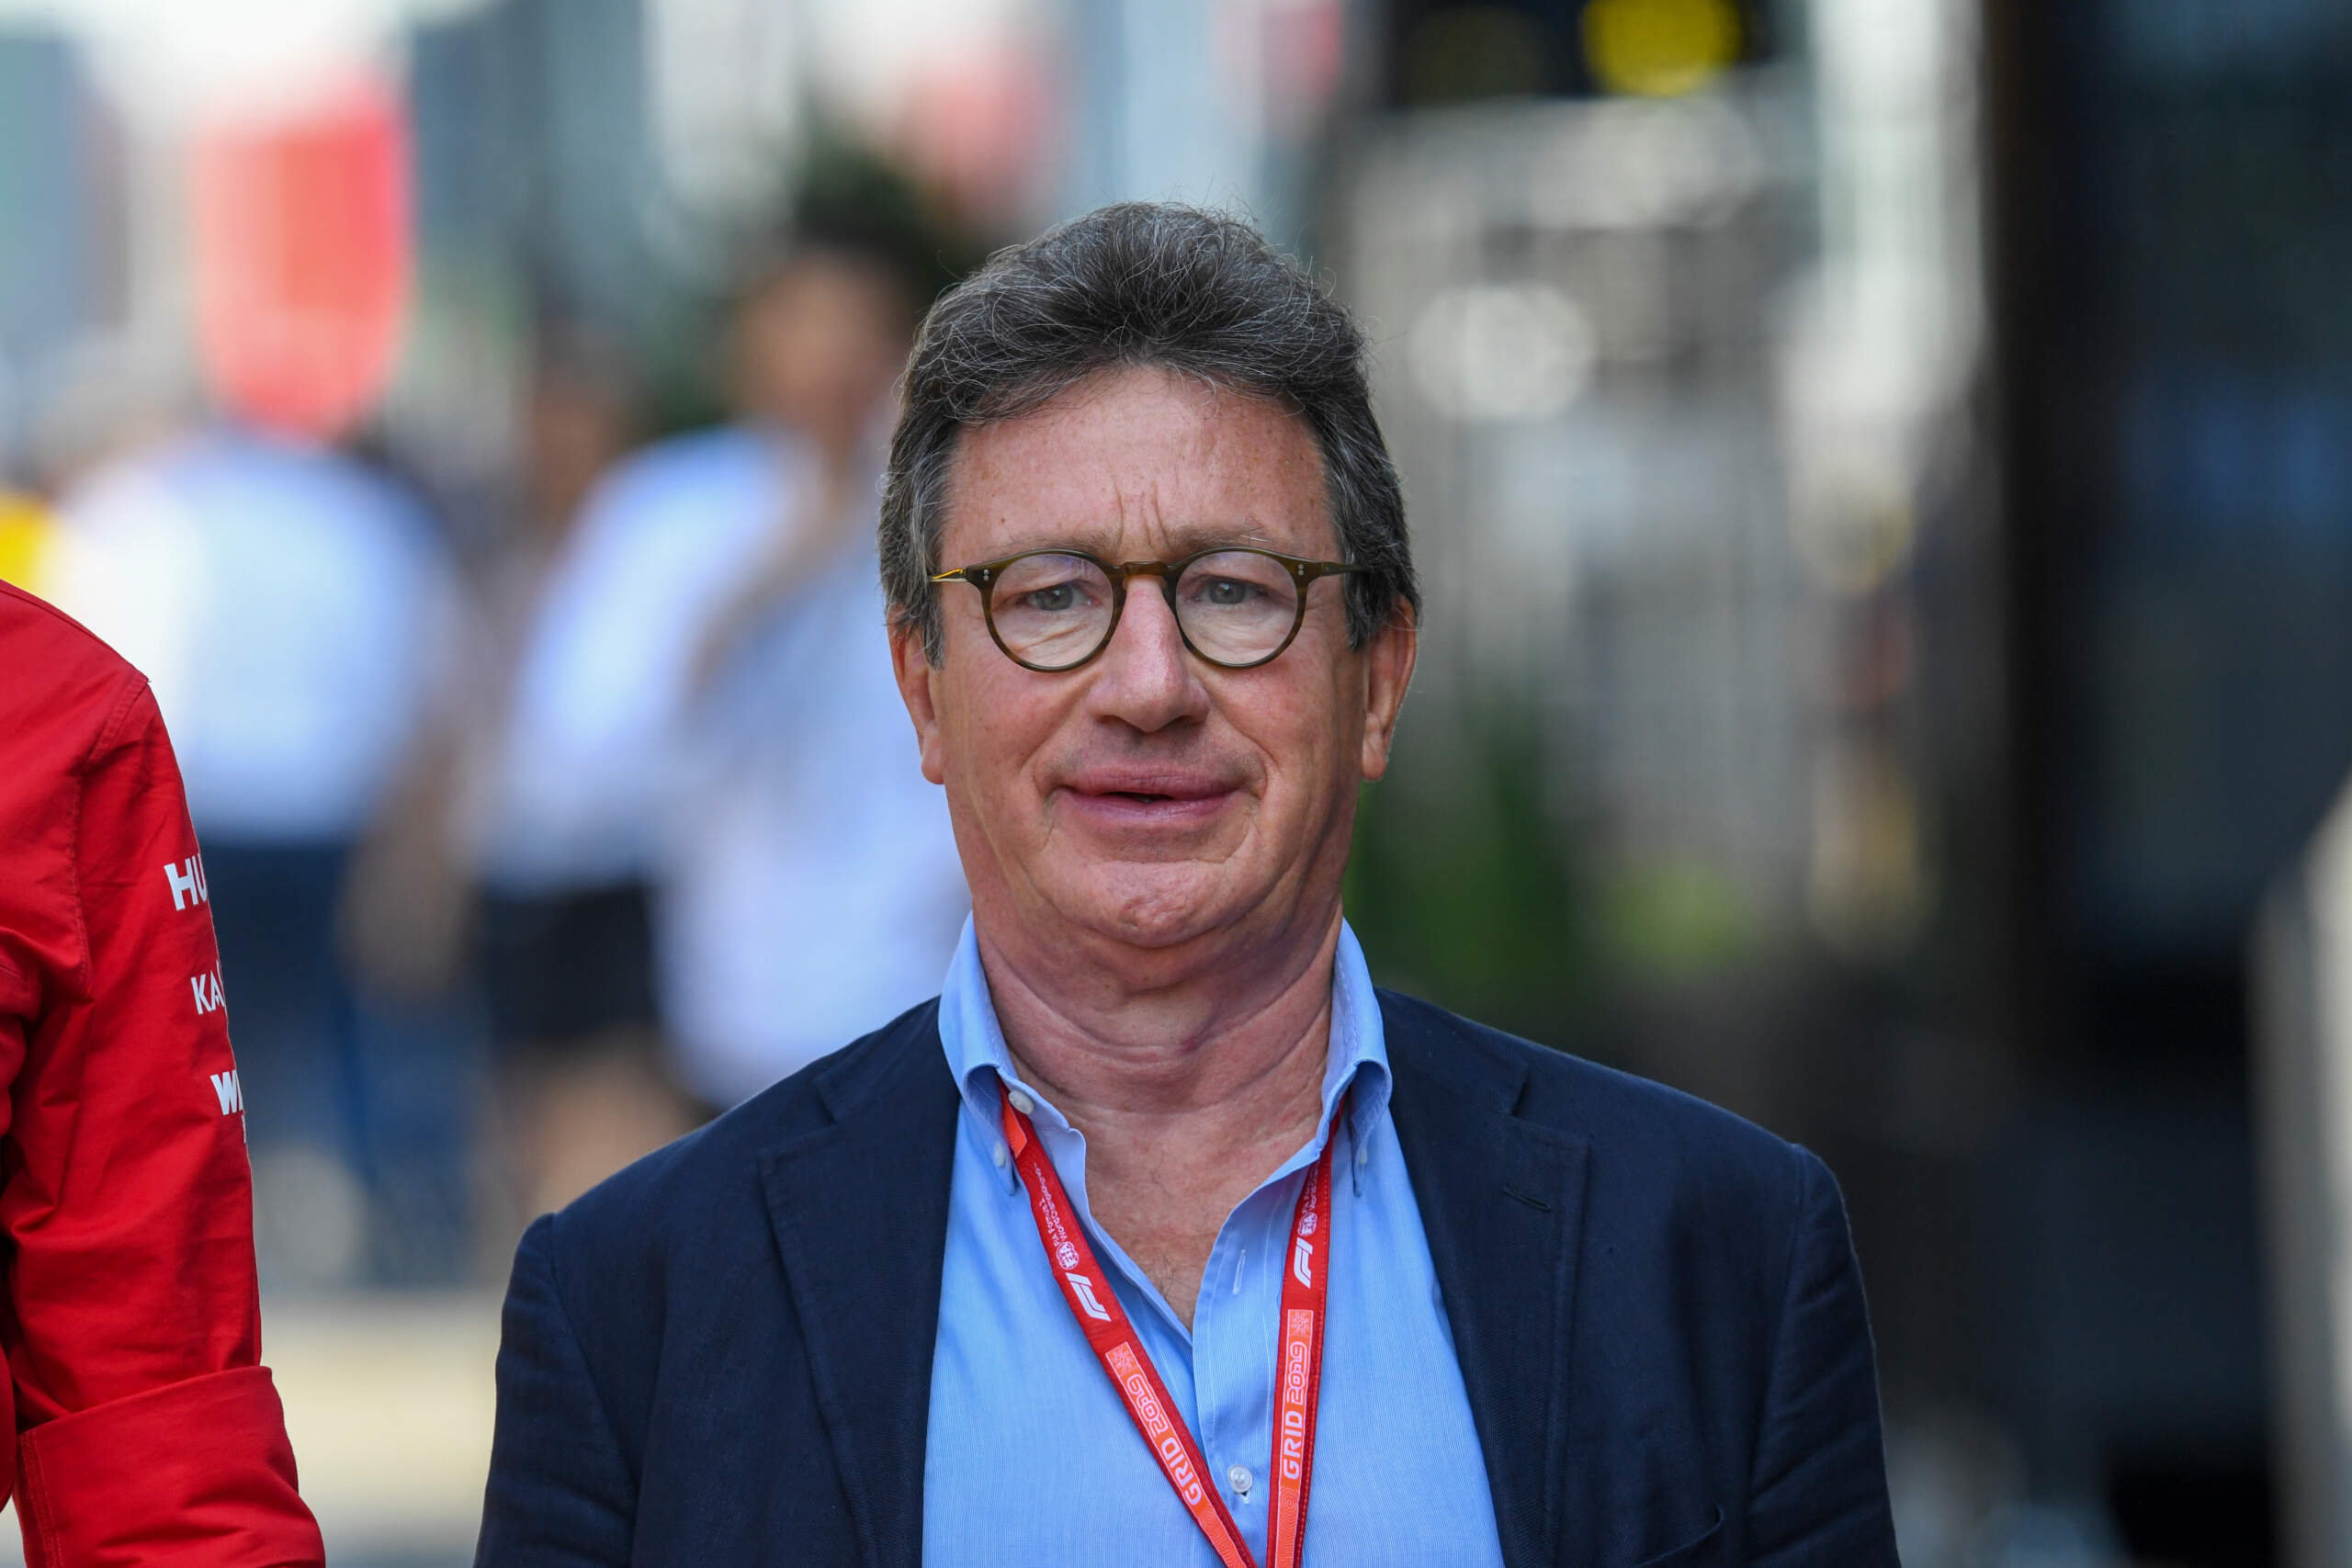 Ferrari CEO Abruptly Resigns After Contracting COVID-19